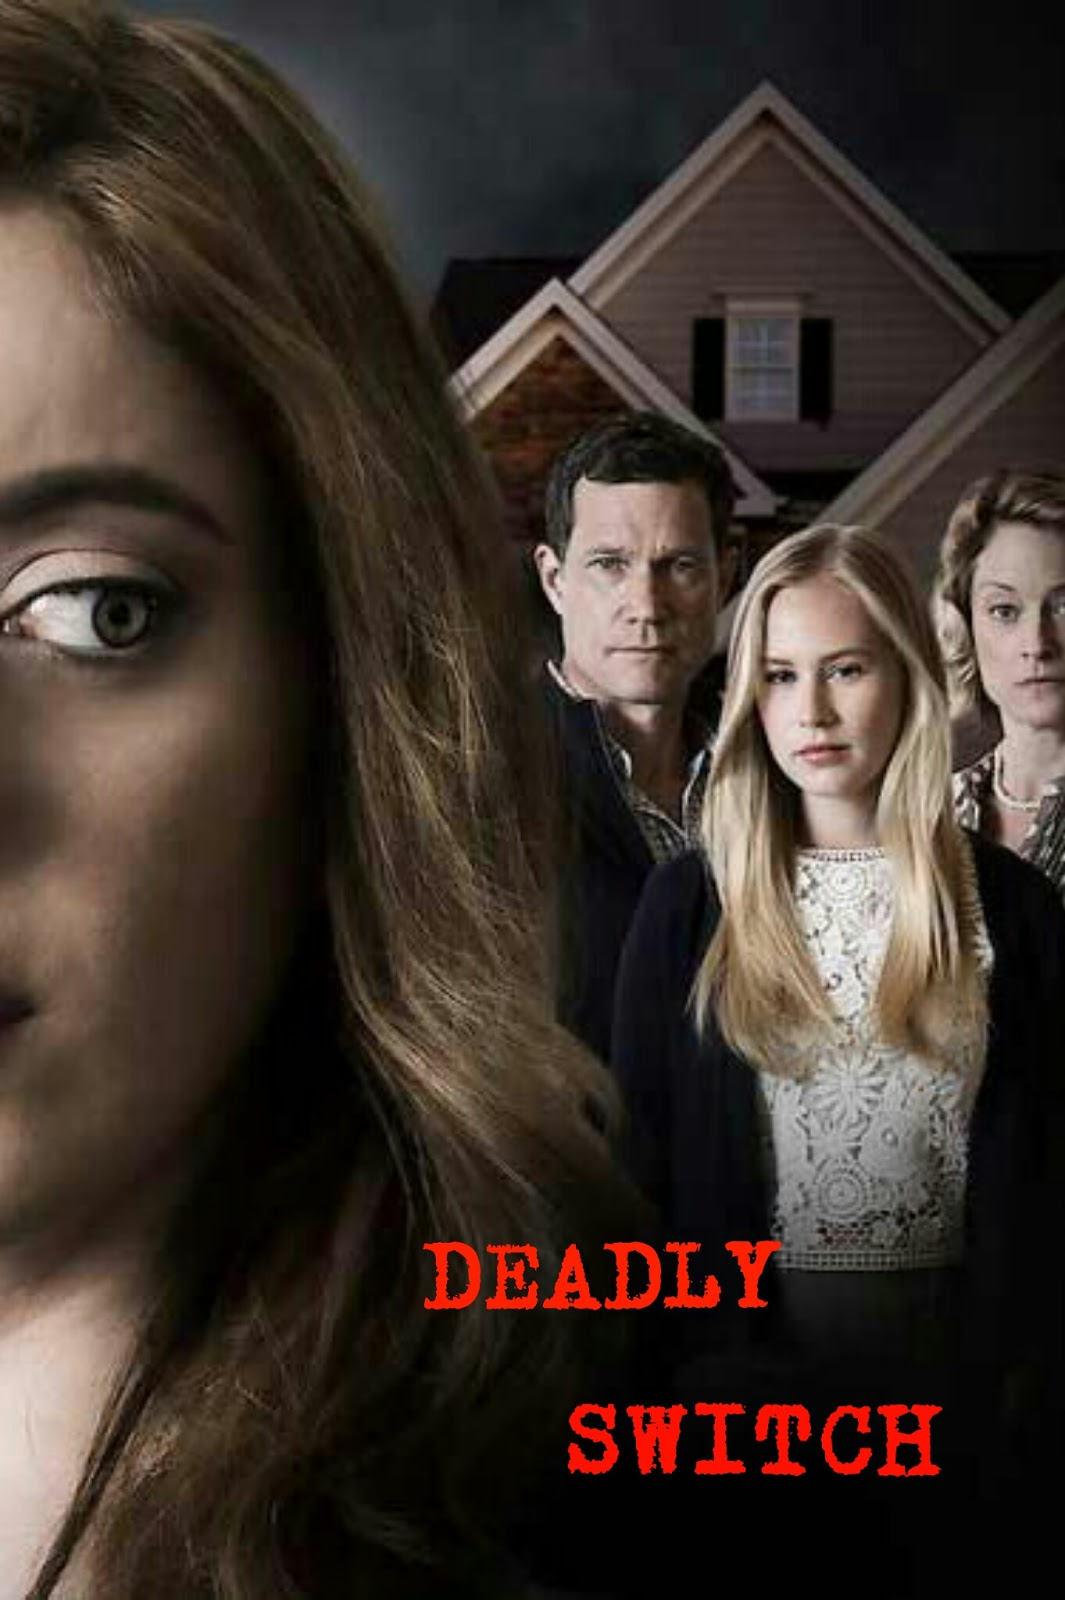 Legit movies and series reviews: Deadly Switch (2019